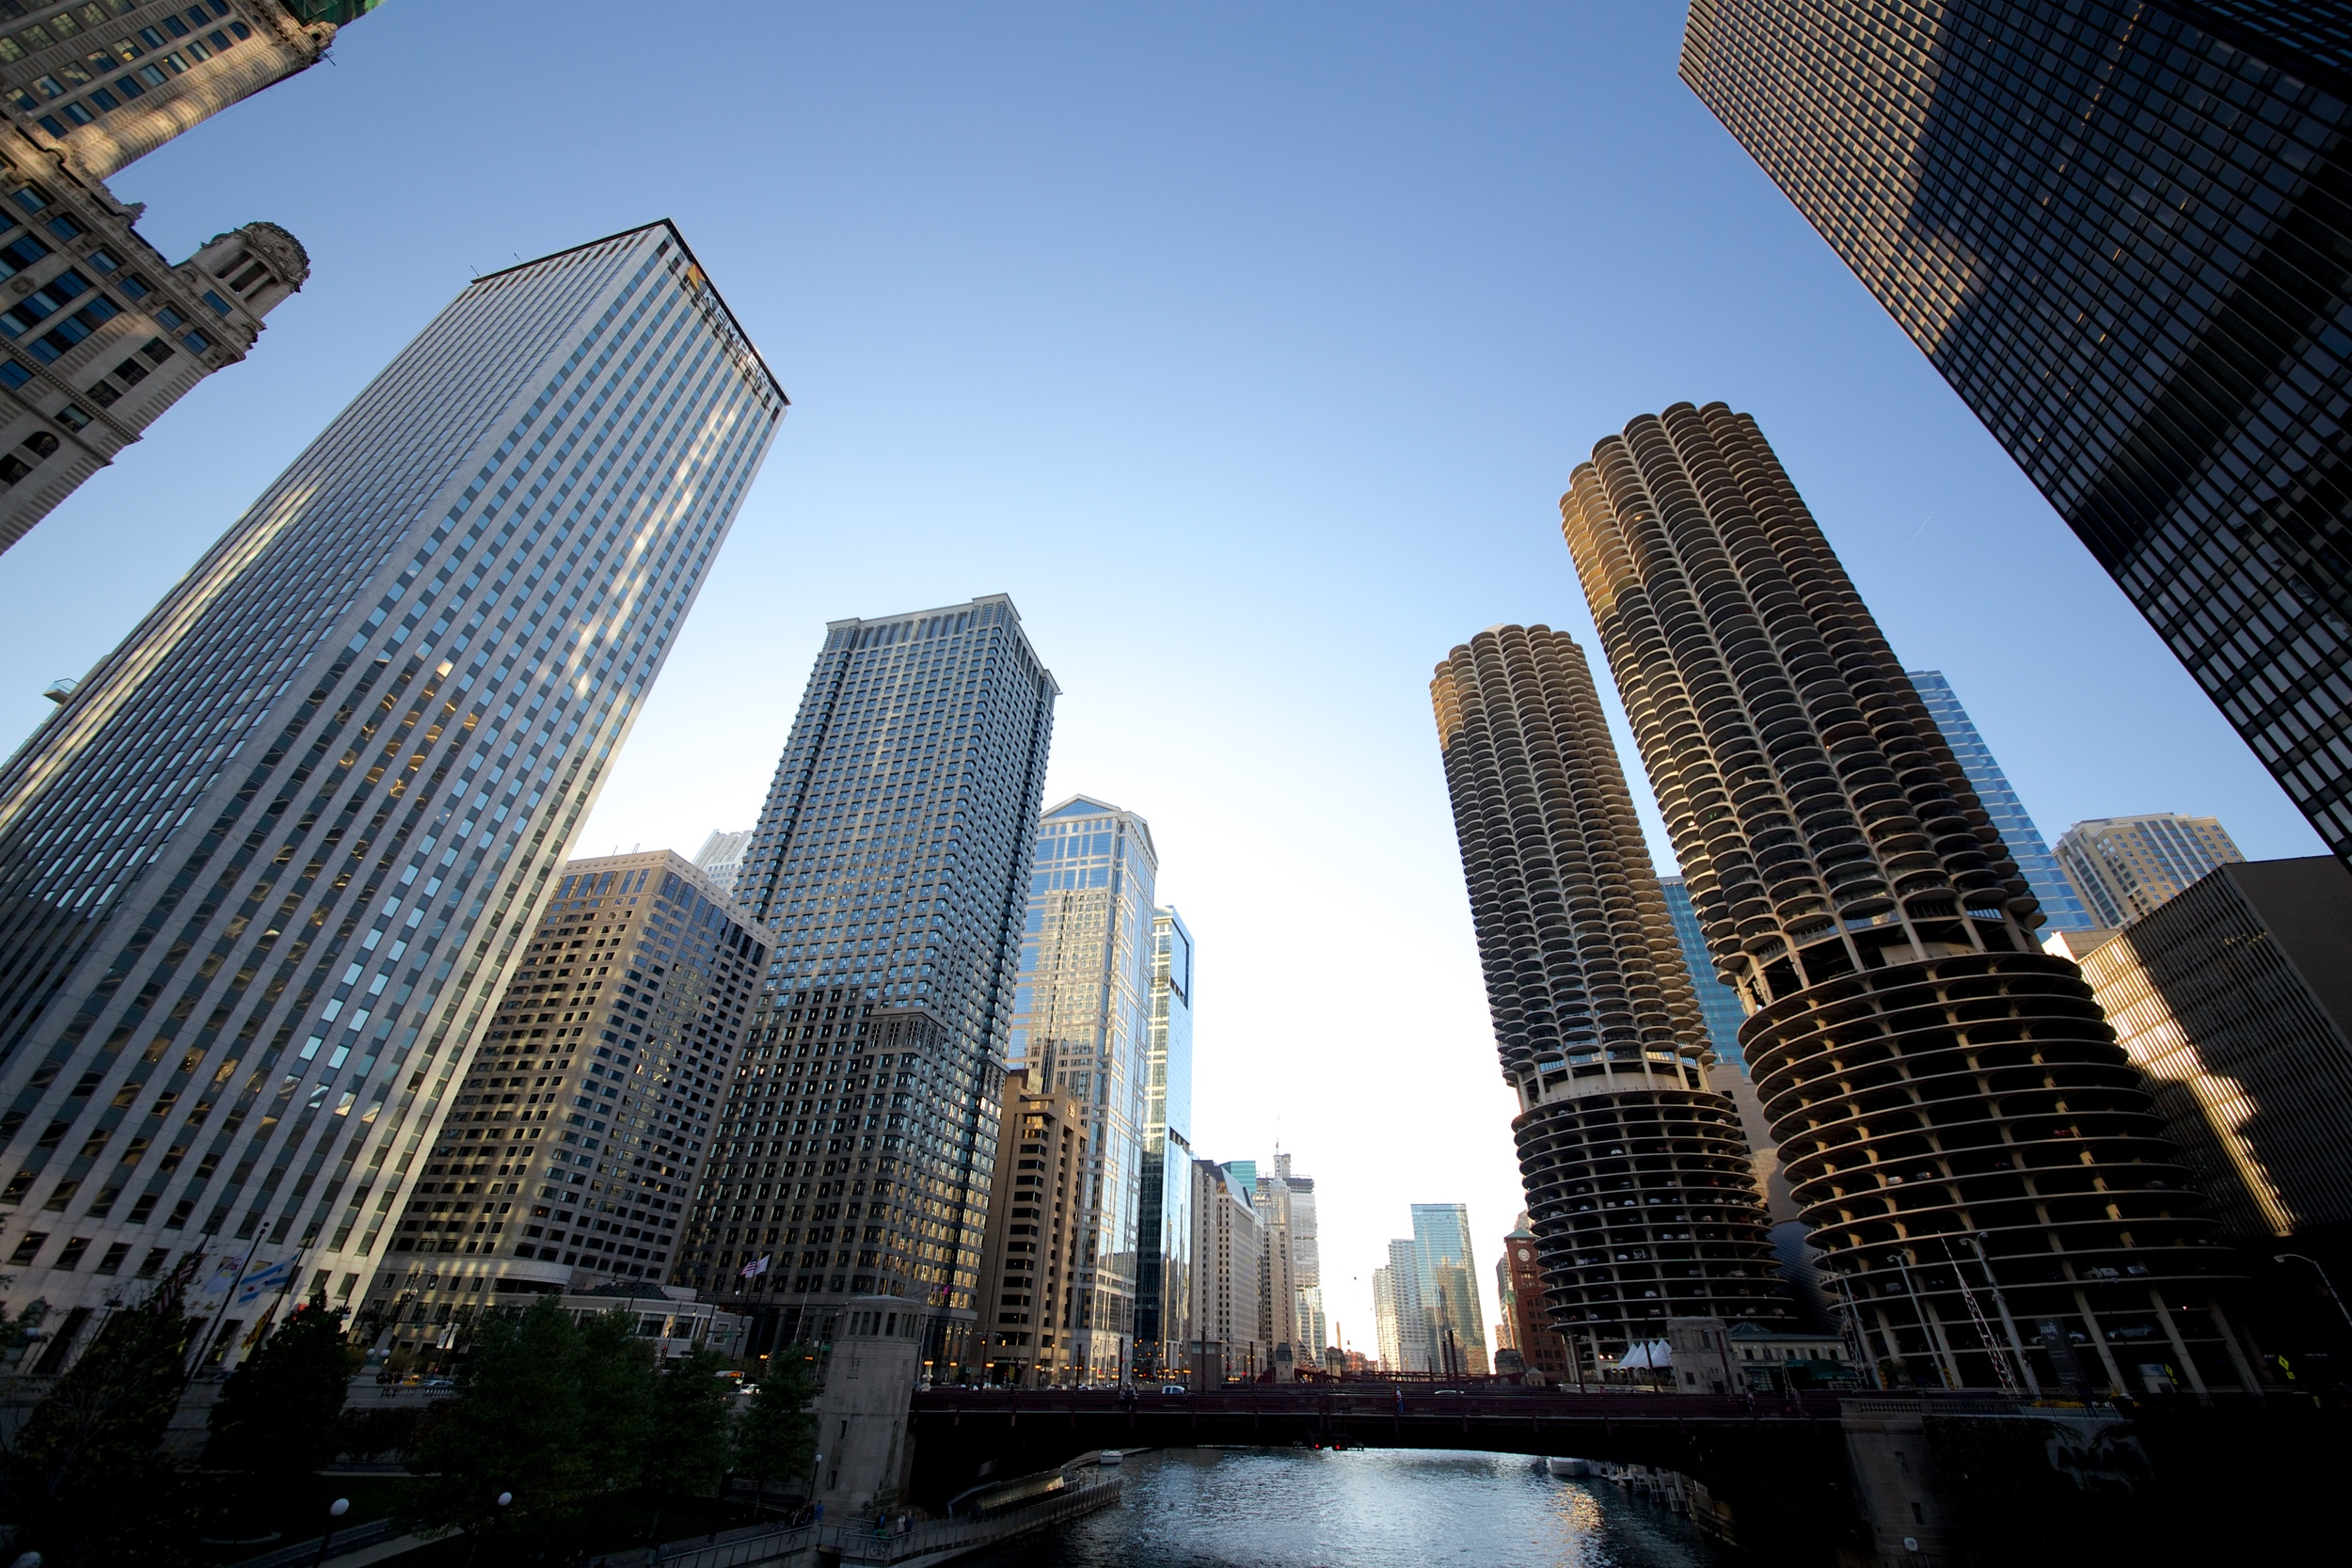 Chicago River - Marina City on the right